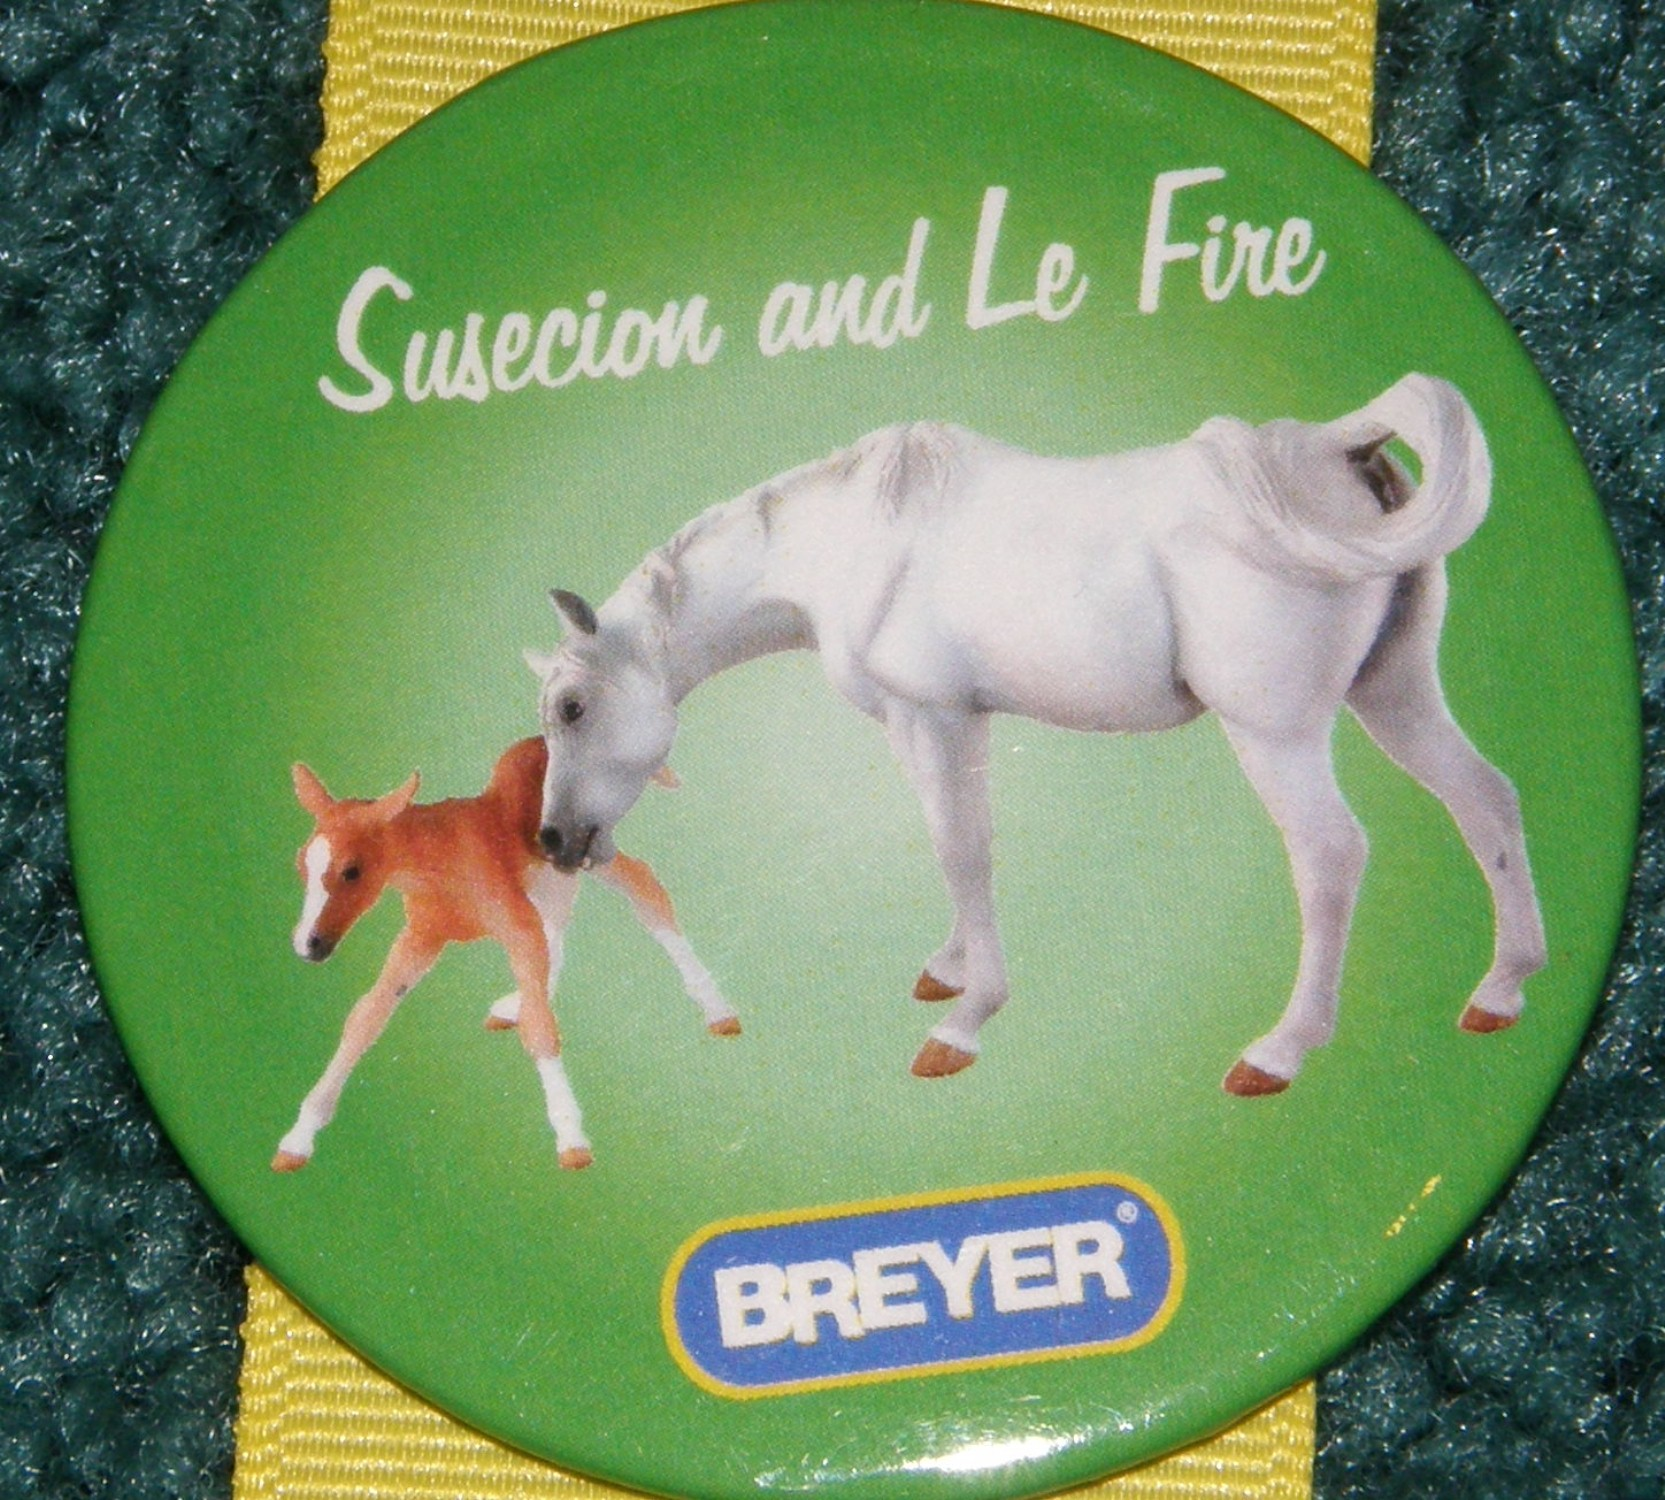 #1175 Susecion & Le Fire Arabian Horse Breyer Button Pin